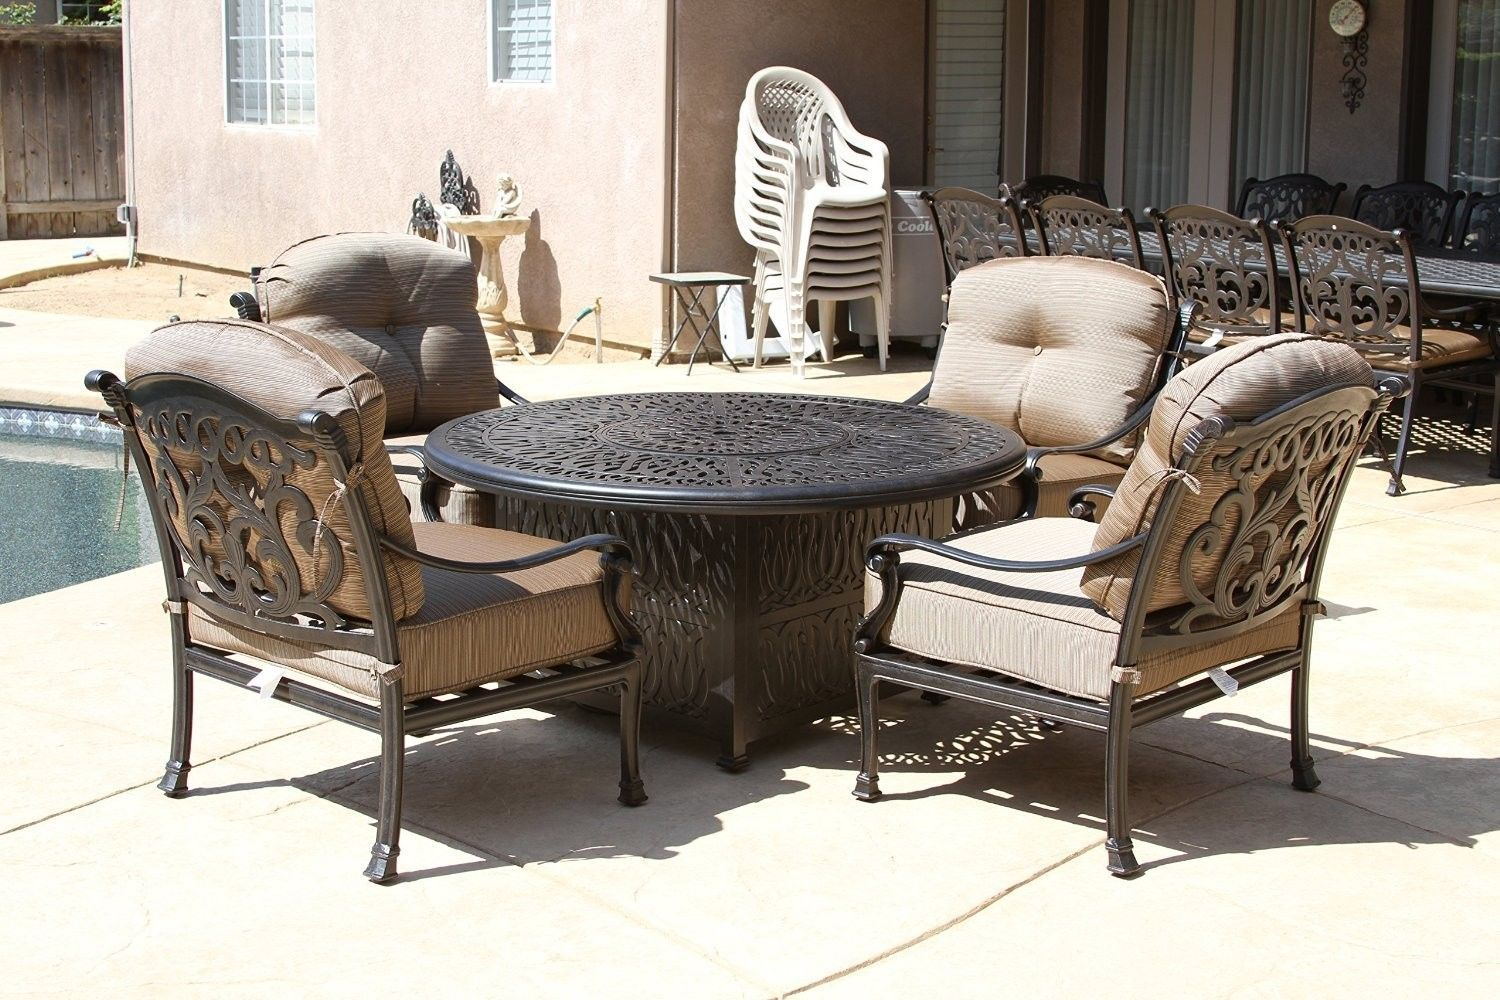 "FLAMINGO 5PC DEEP SEATING SET – 4 CLUB CHAIRS AND 52"" ROUND FIRE PIT"